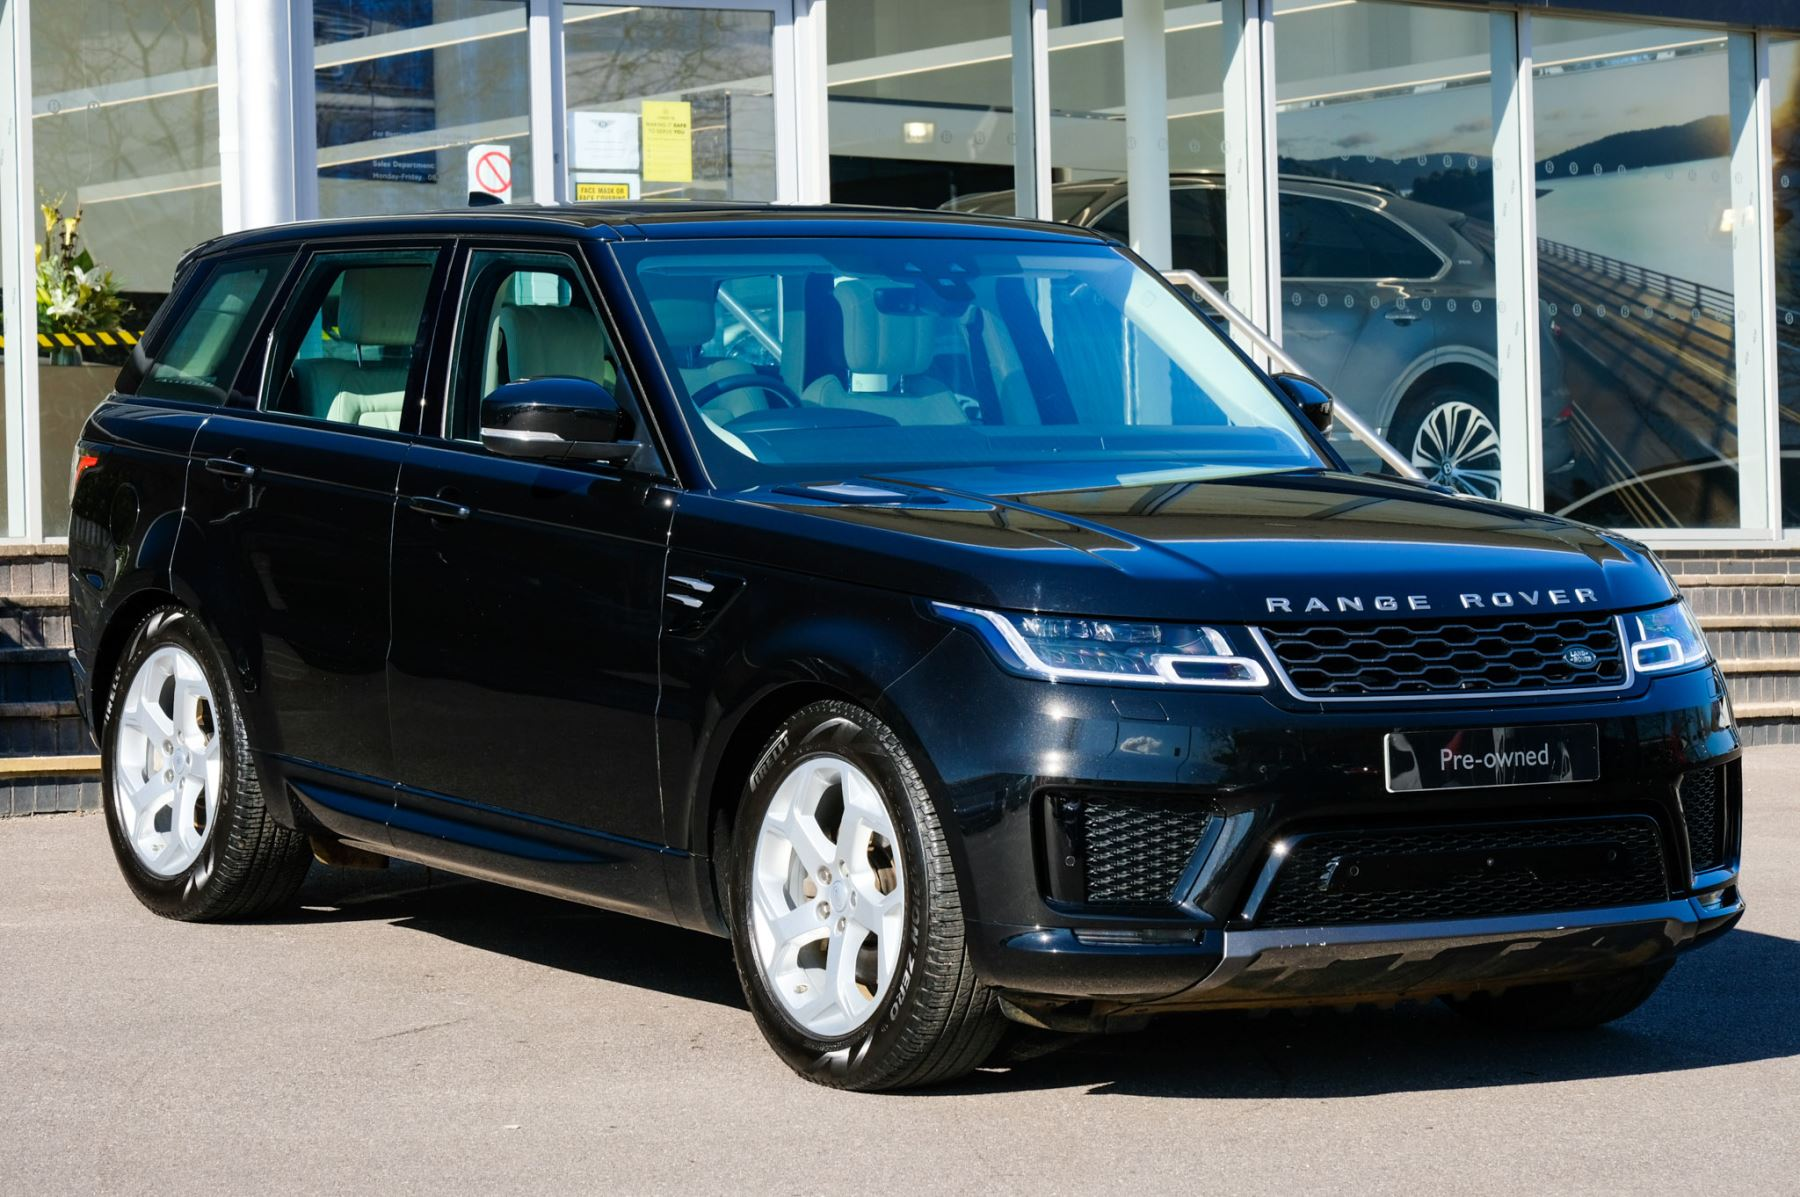 Land Rover Range Rover Sport 3.0 SDV6 HSE 5dr - Sliding panoramic roof & Refrigerator compartment Diesel Automatic Estate